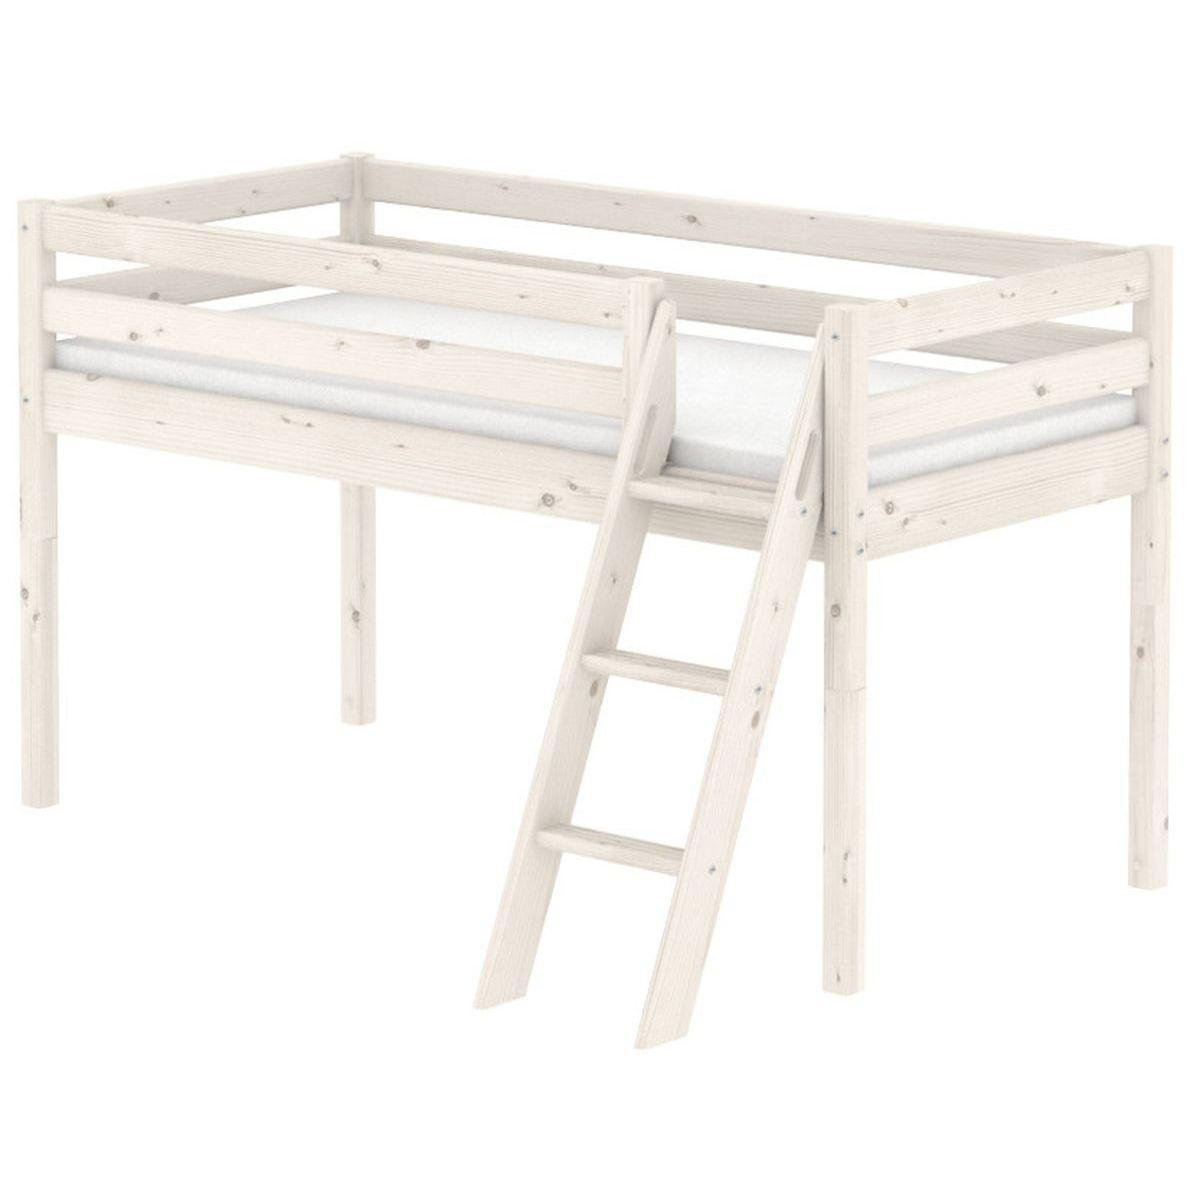 Cama media alta 90x200 CLASSIC Flexa escalera inclinada blanco cal